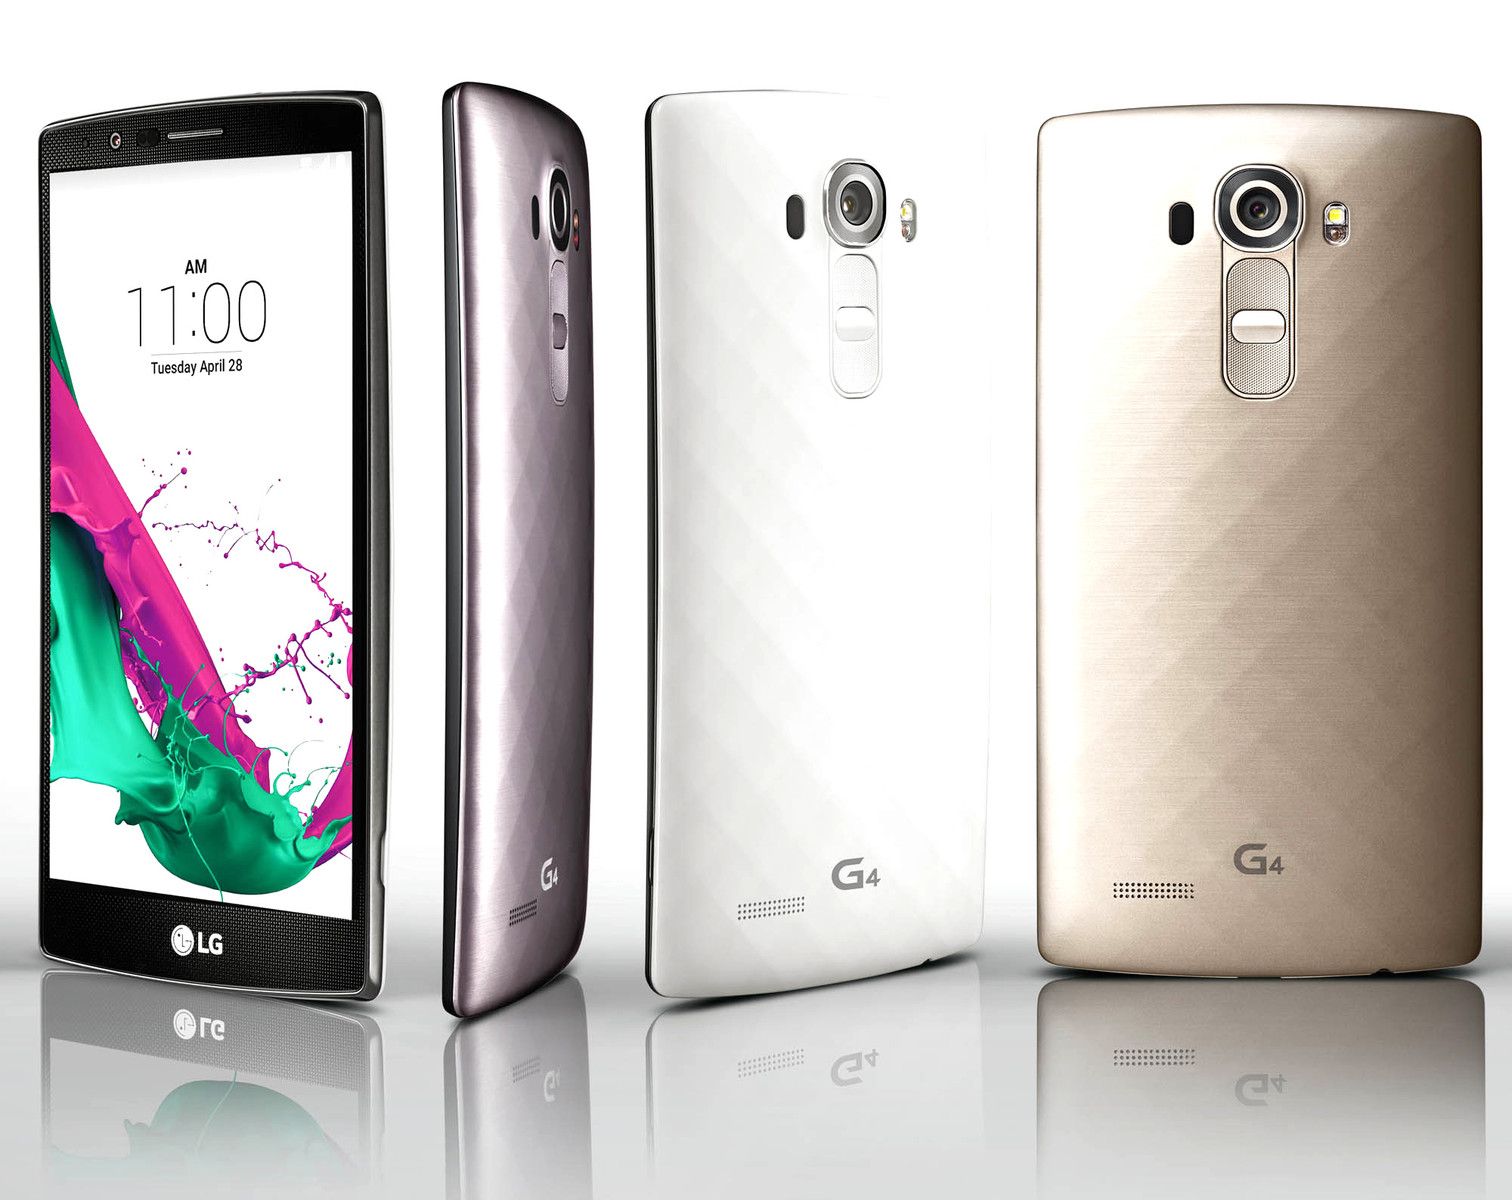 LG G4 Smartphone Review - NotebookCheck net Reviews